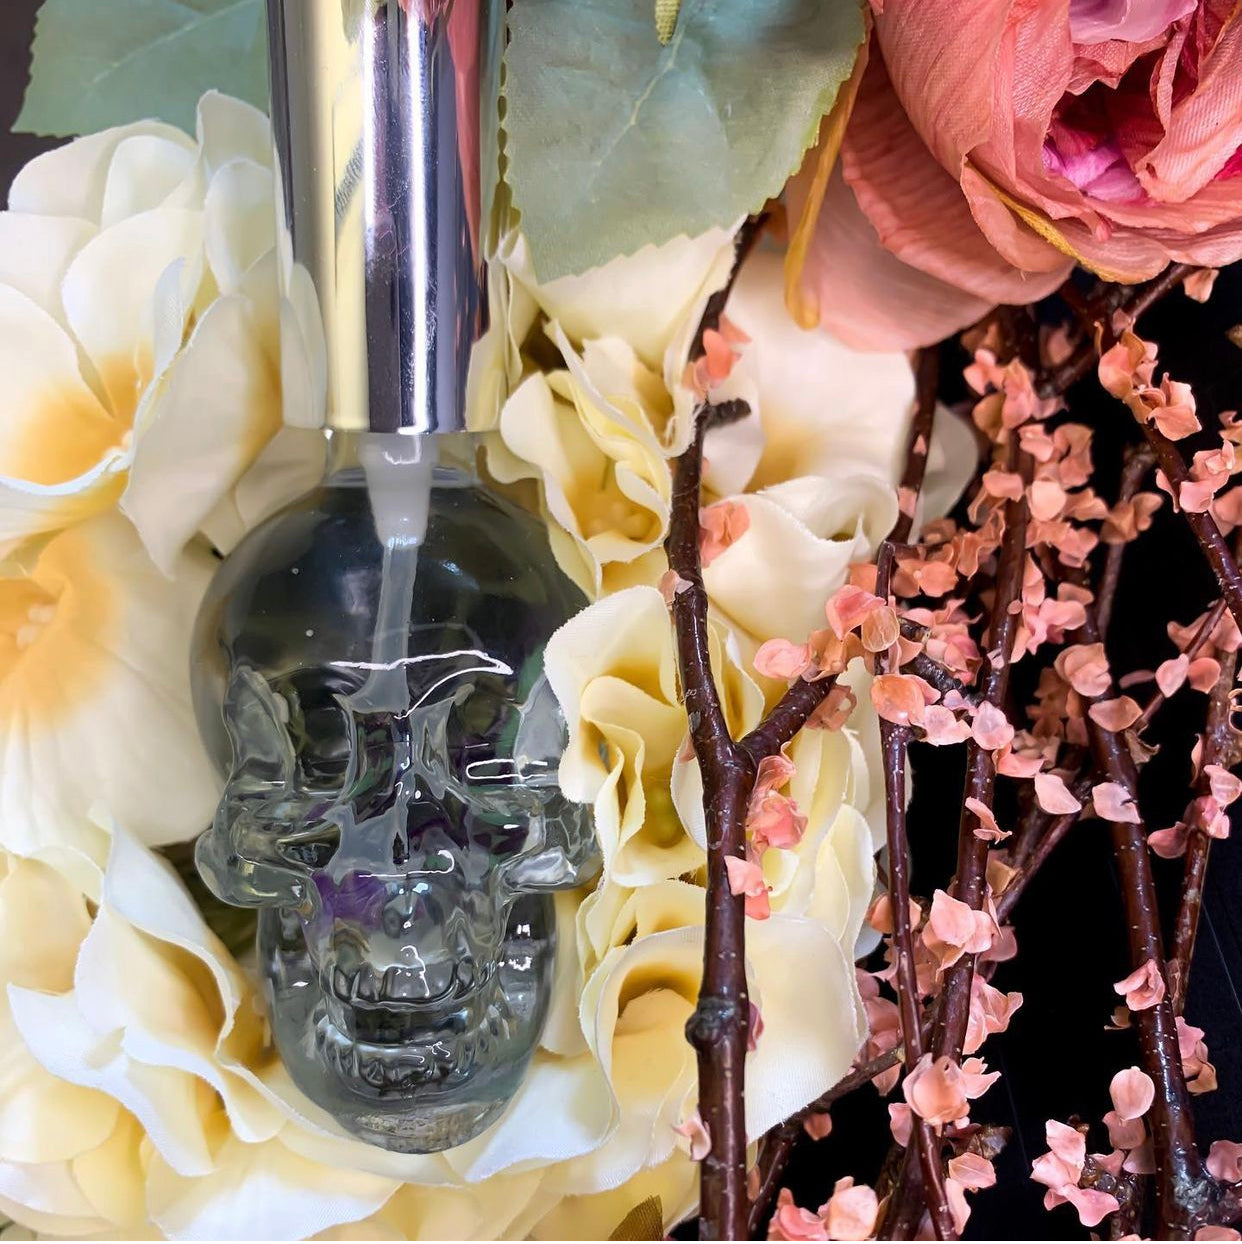 LIMITED EDITION Oddities Skull Bottle Facial Spray